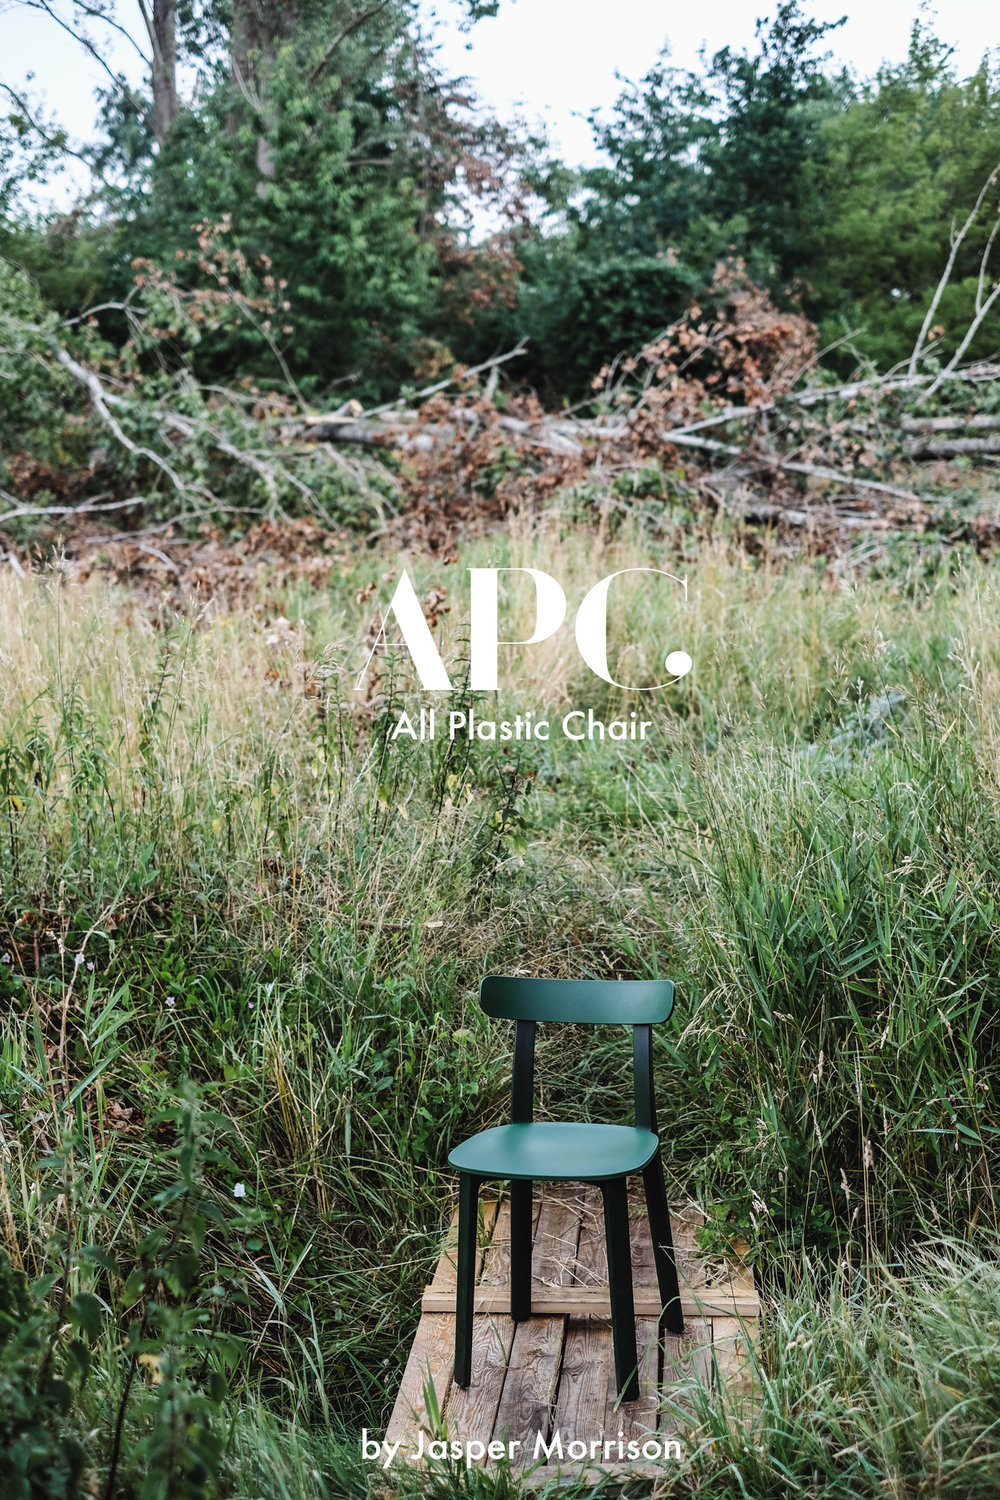 Setz Dich! - All Plastic Chair